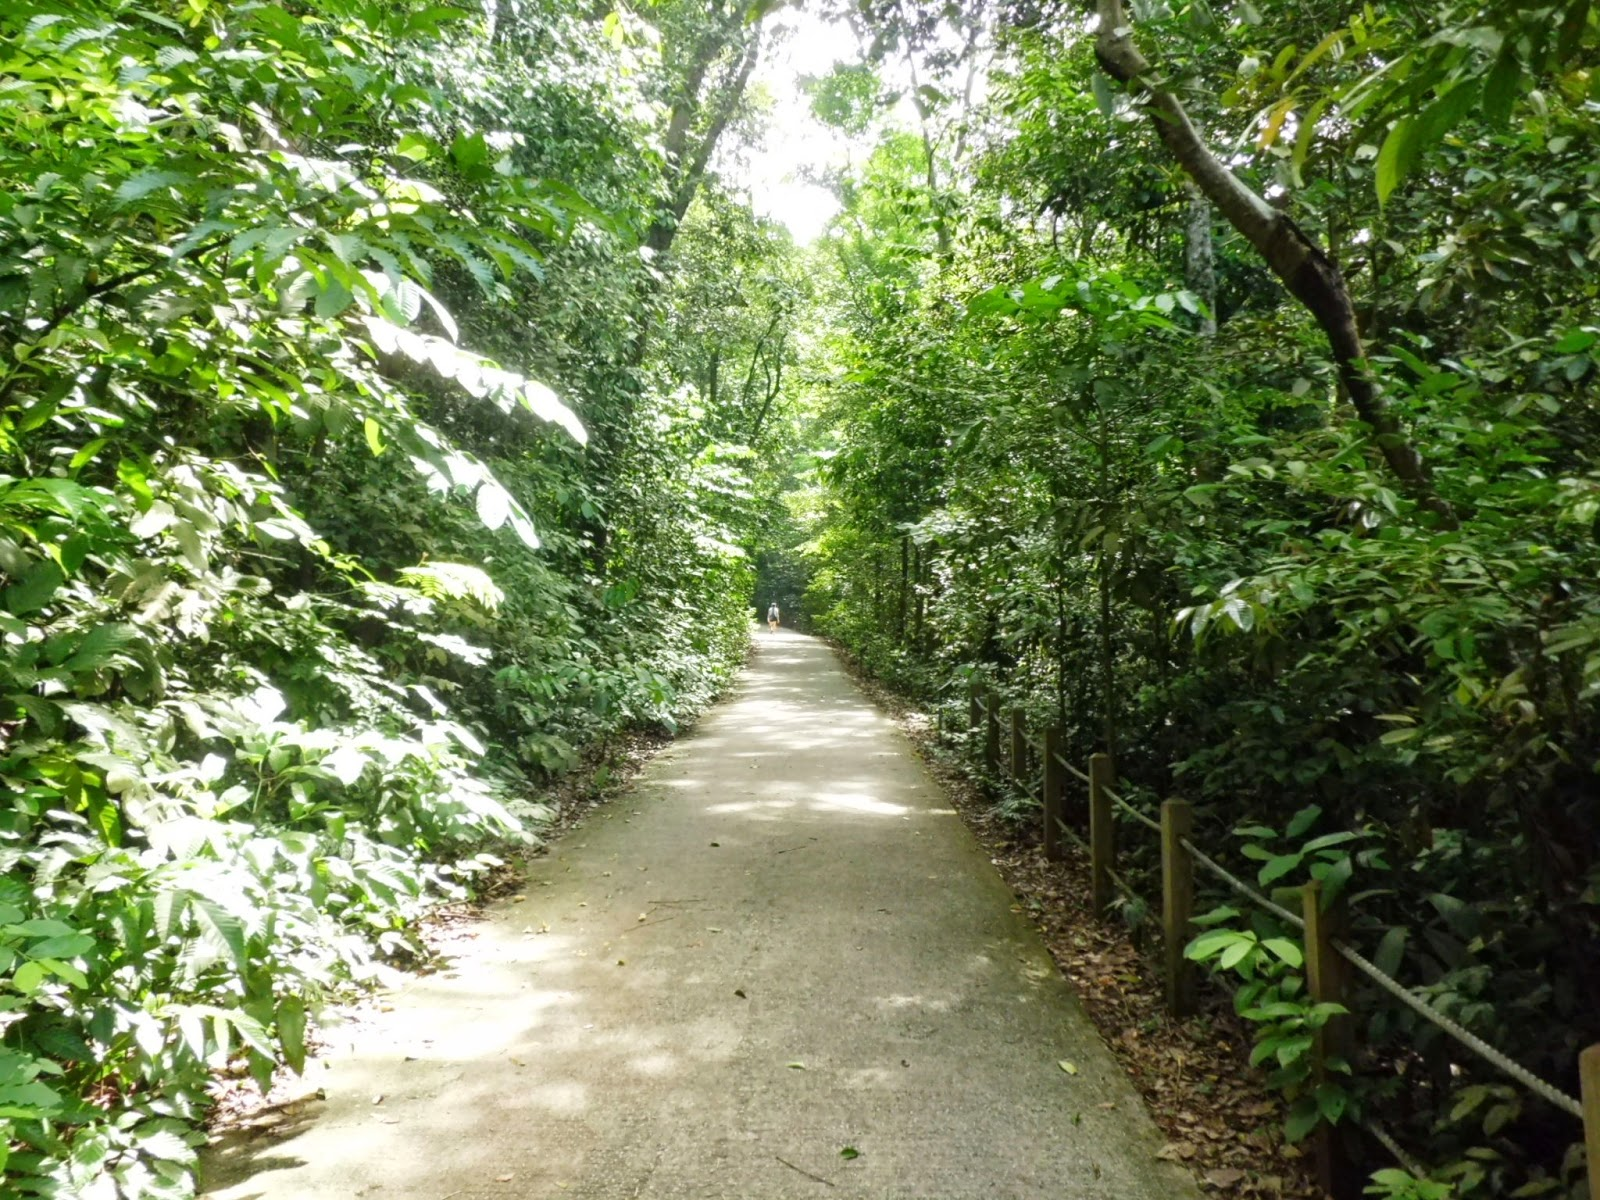 The start of the Main Road (1.1km) stretching from the visitor centre to the summit of Bukit Timah Hill